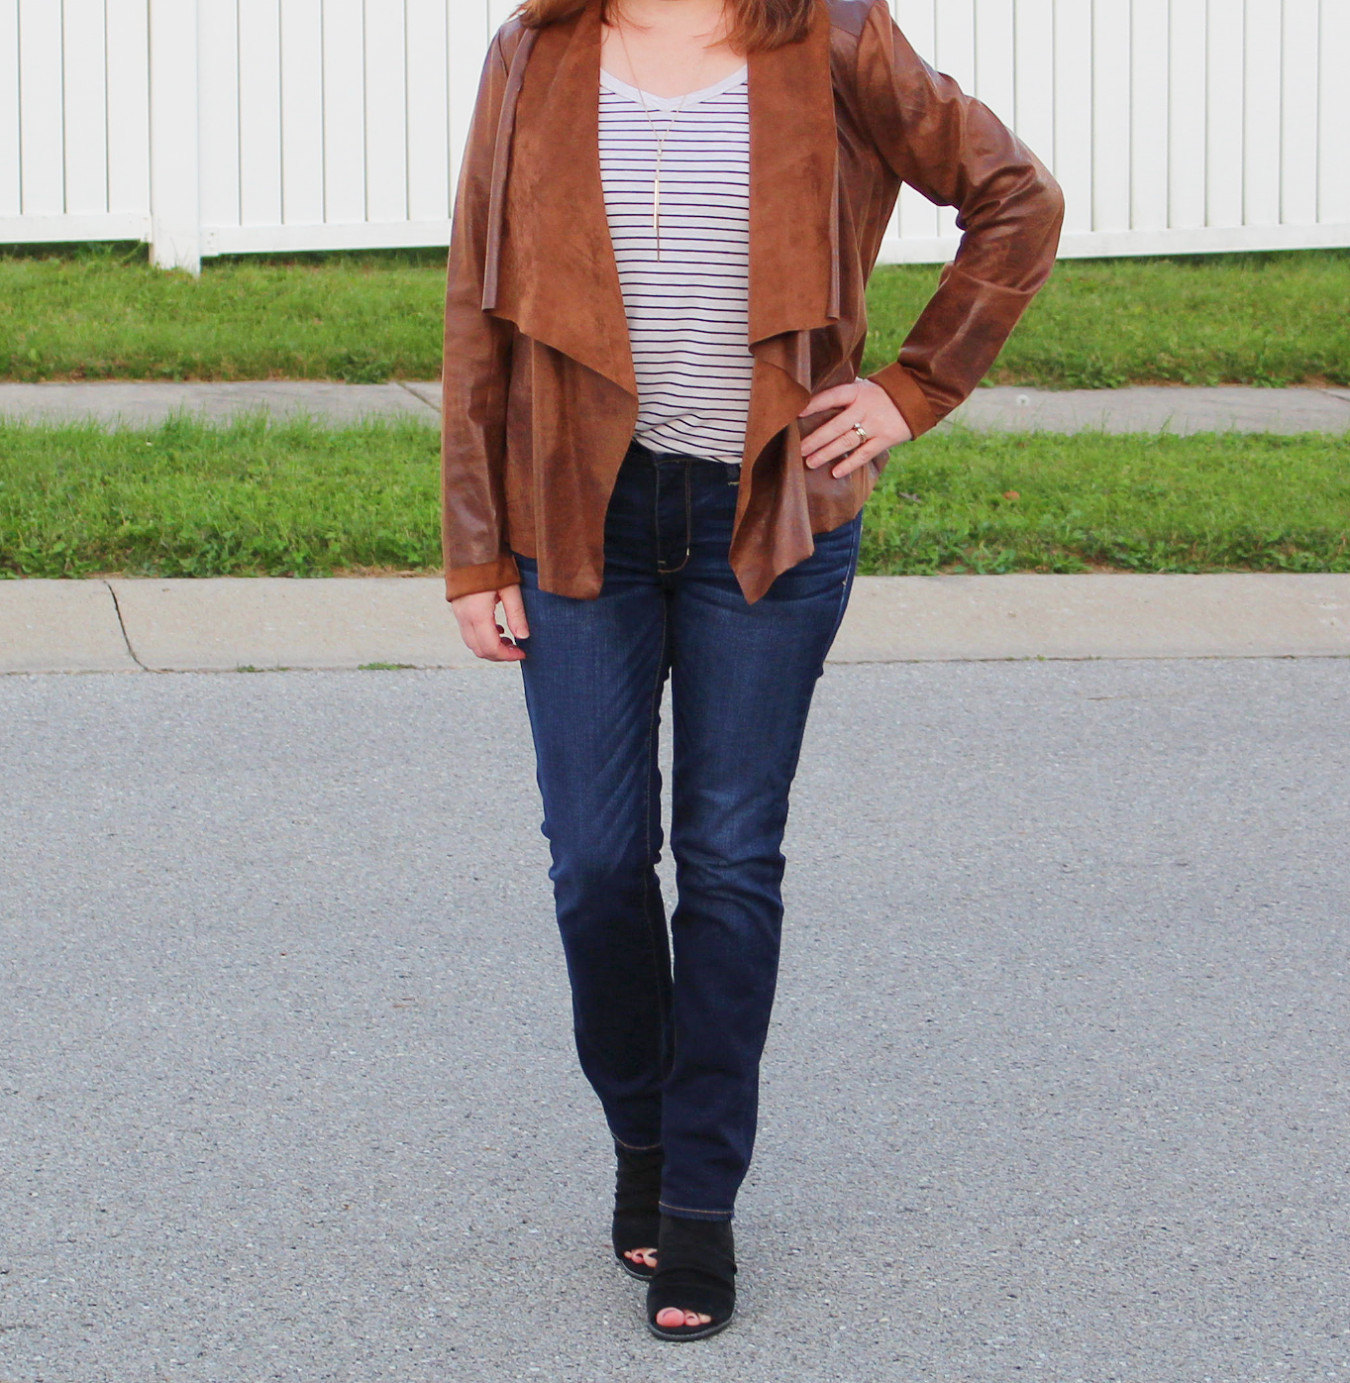 Brown Suede Jacket With Jeans And Black Slingback Booties